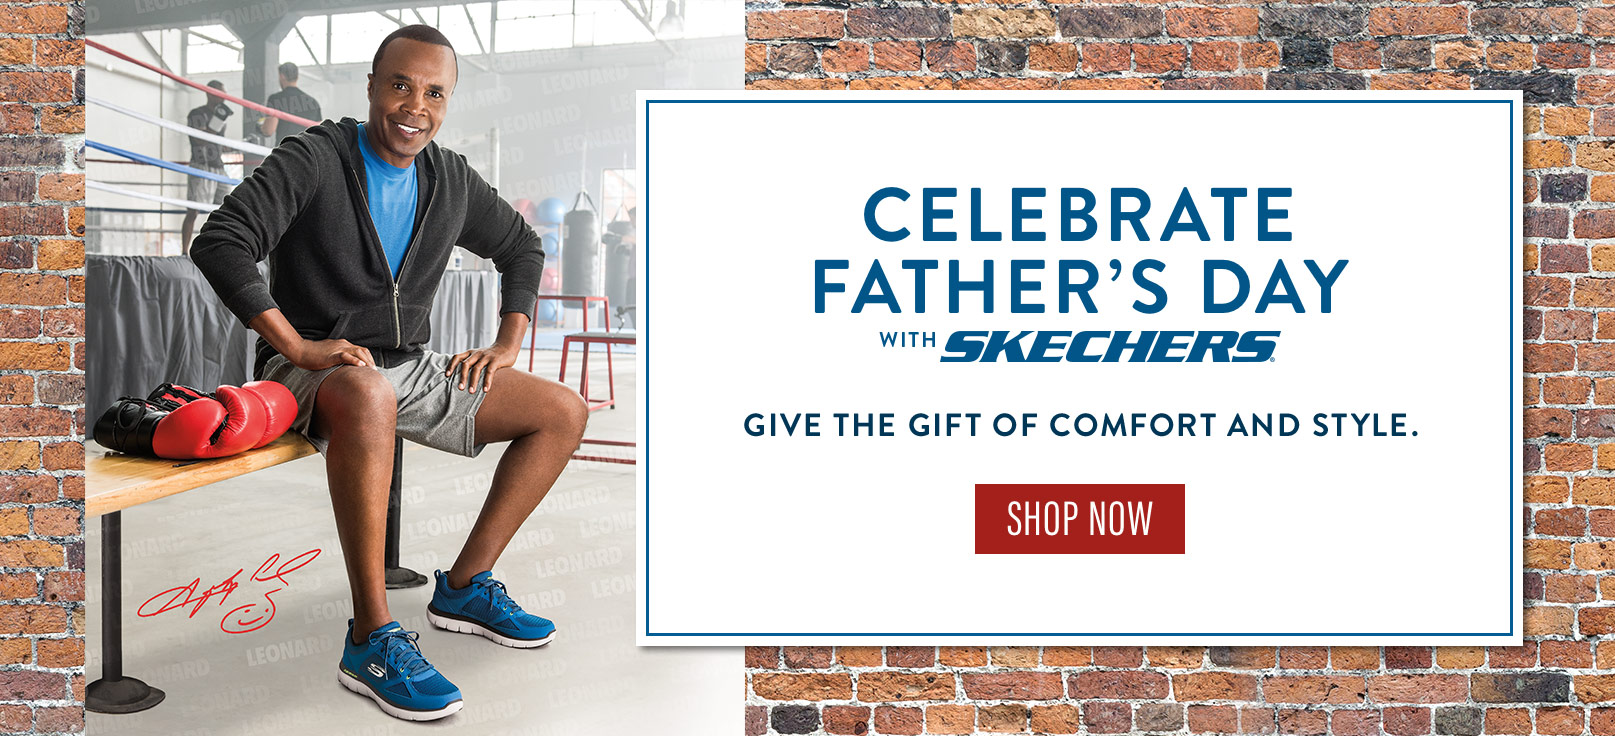 Happy Father's Day from Skechers and Sugar Ray Leonard